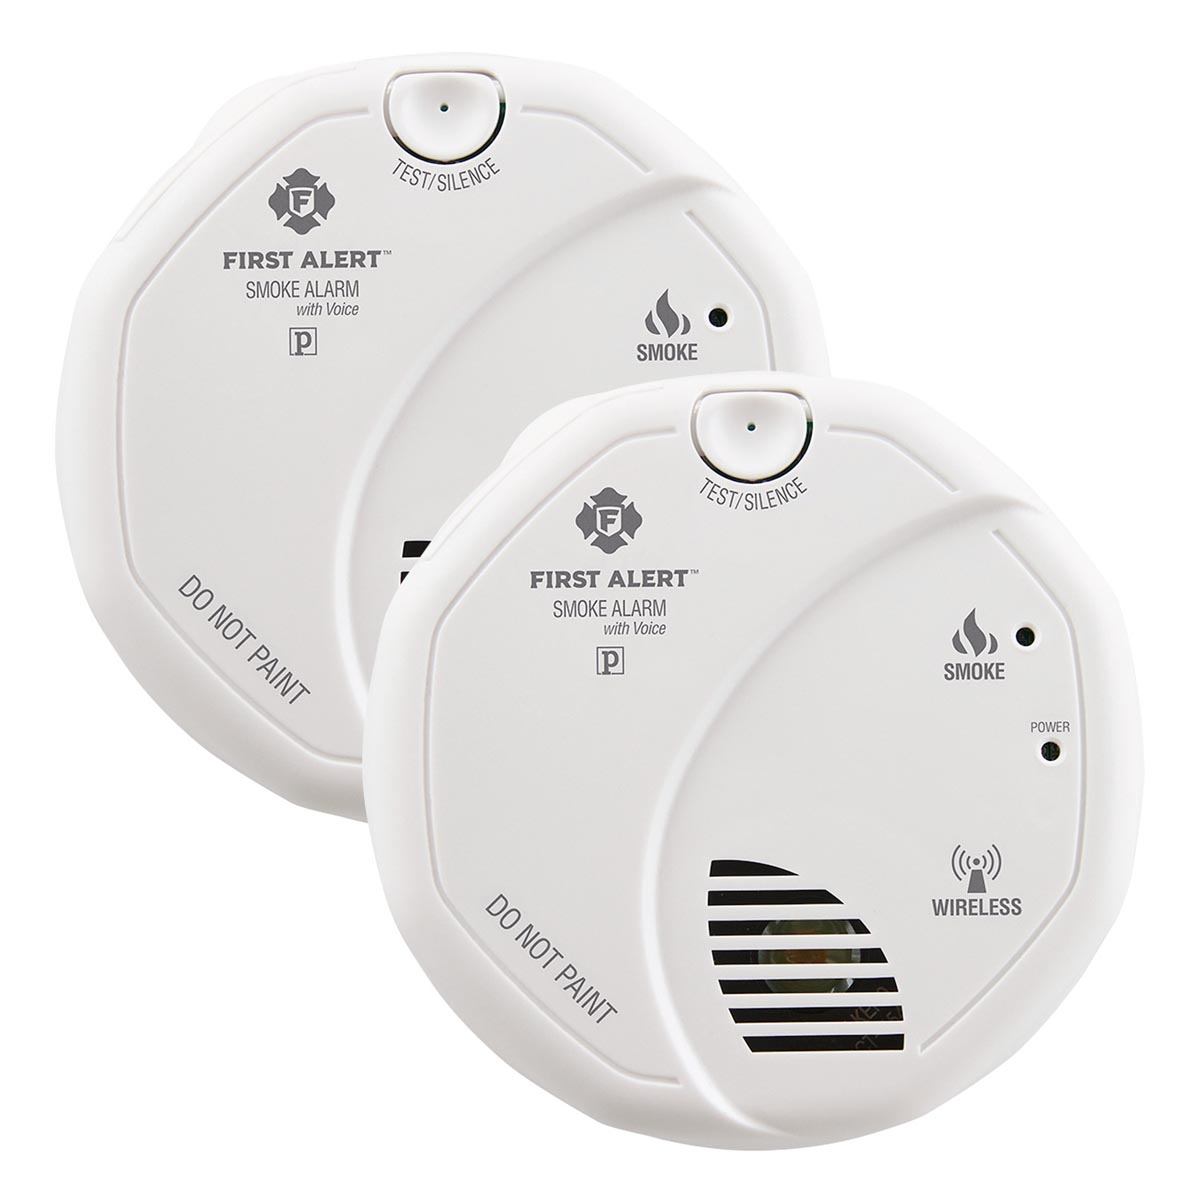 First Alert Wireless Interconnect Battery Operated Smoke Alarm With Voice Location Twin Pack